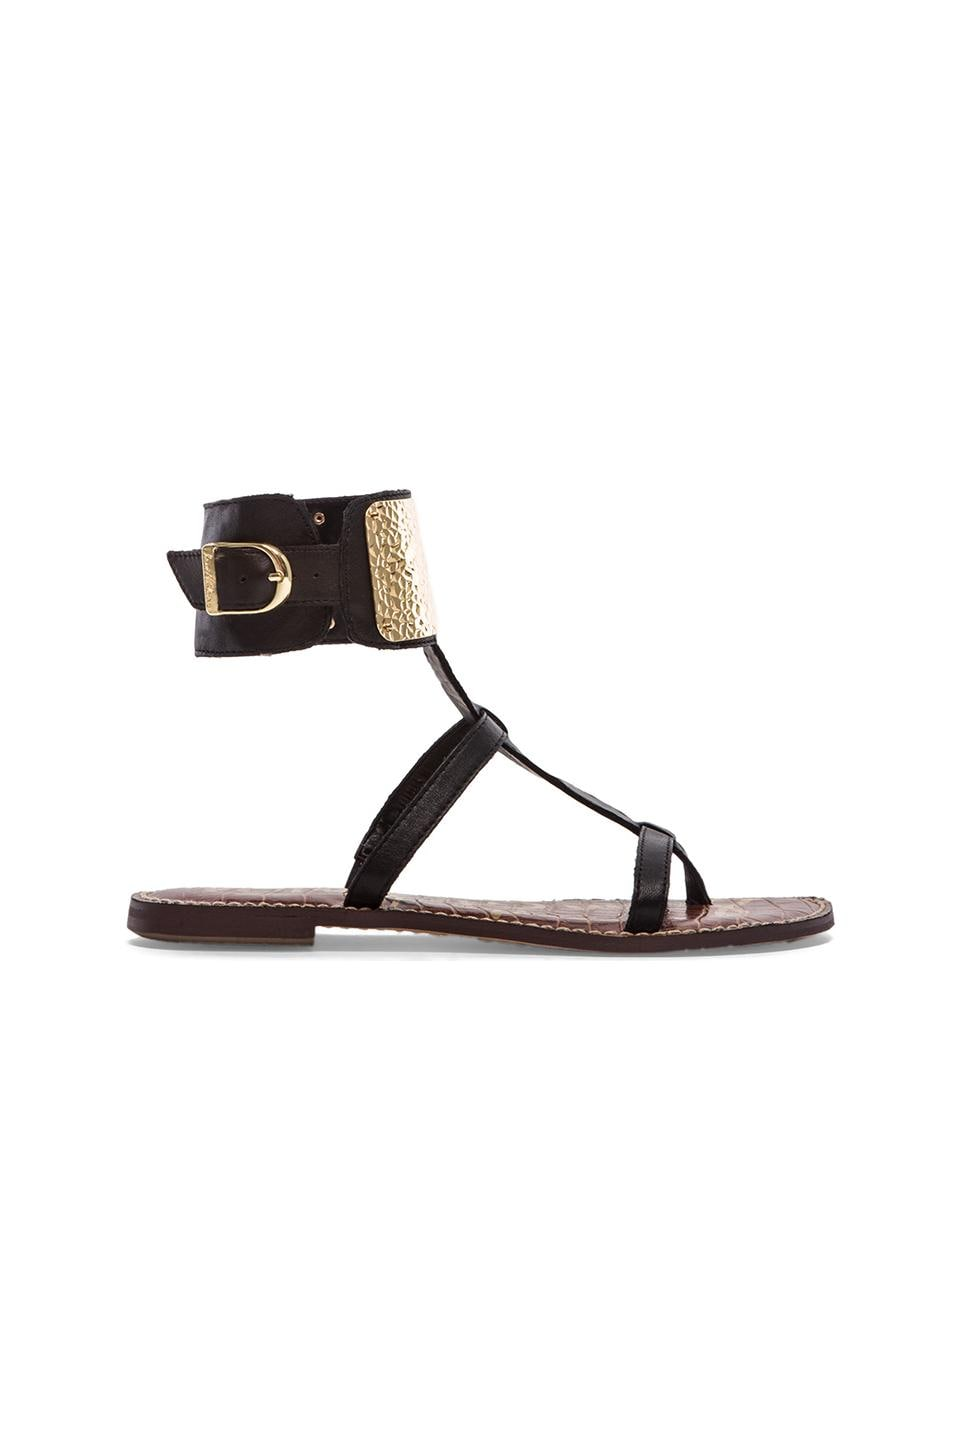 Sam Edelman Genette Sandal in Black